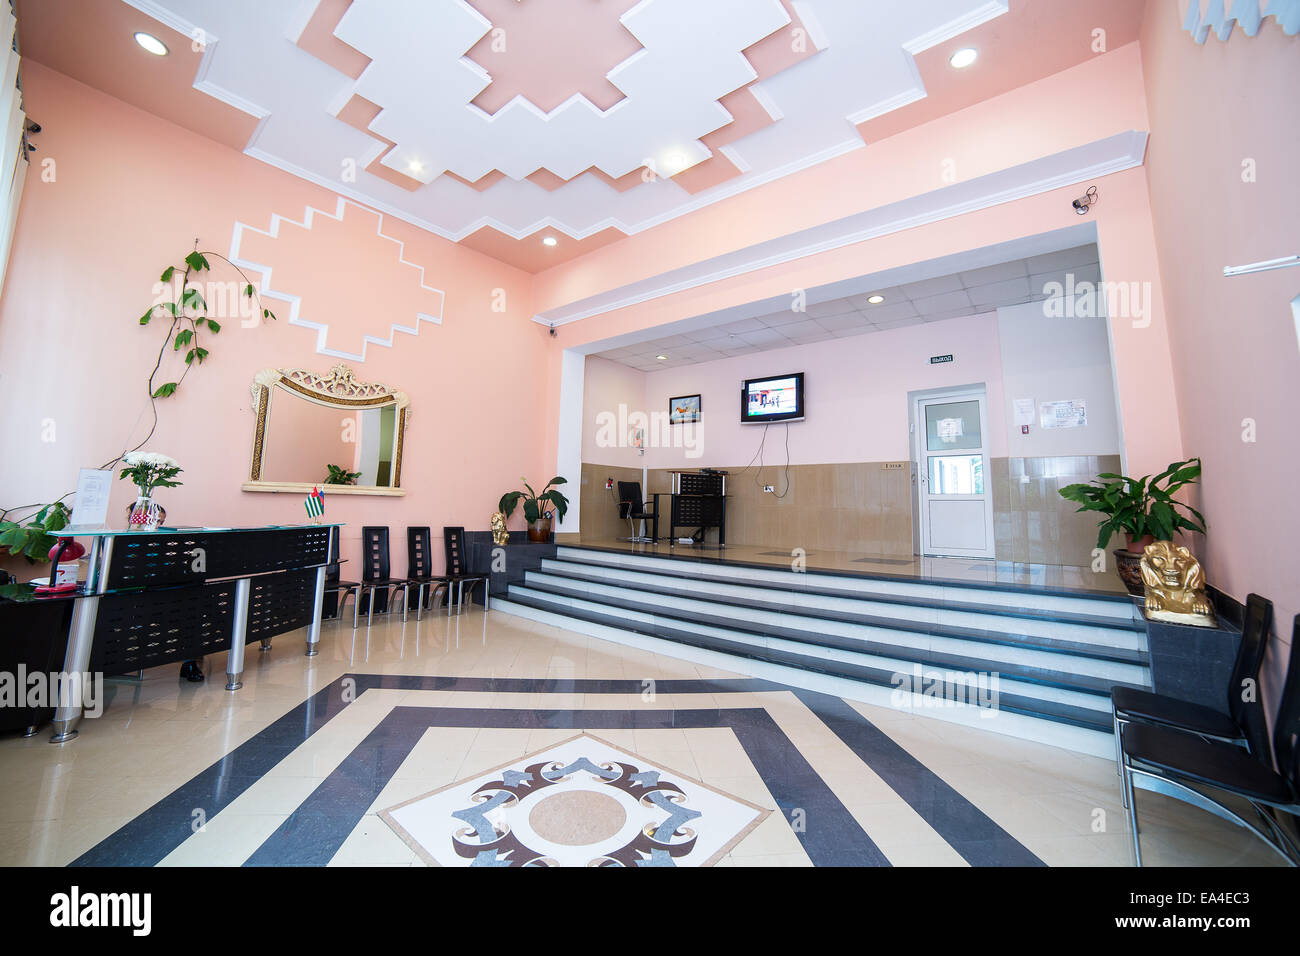 Luxury Lobby In Hotel Reception Hall Interior Design Stock Photo Alamy